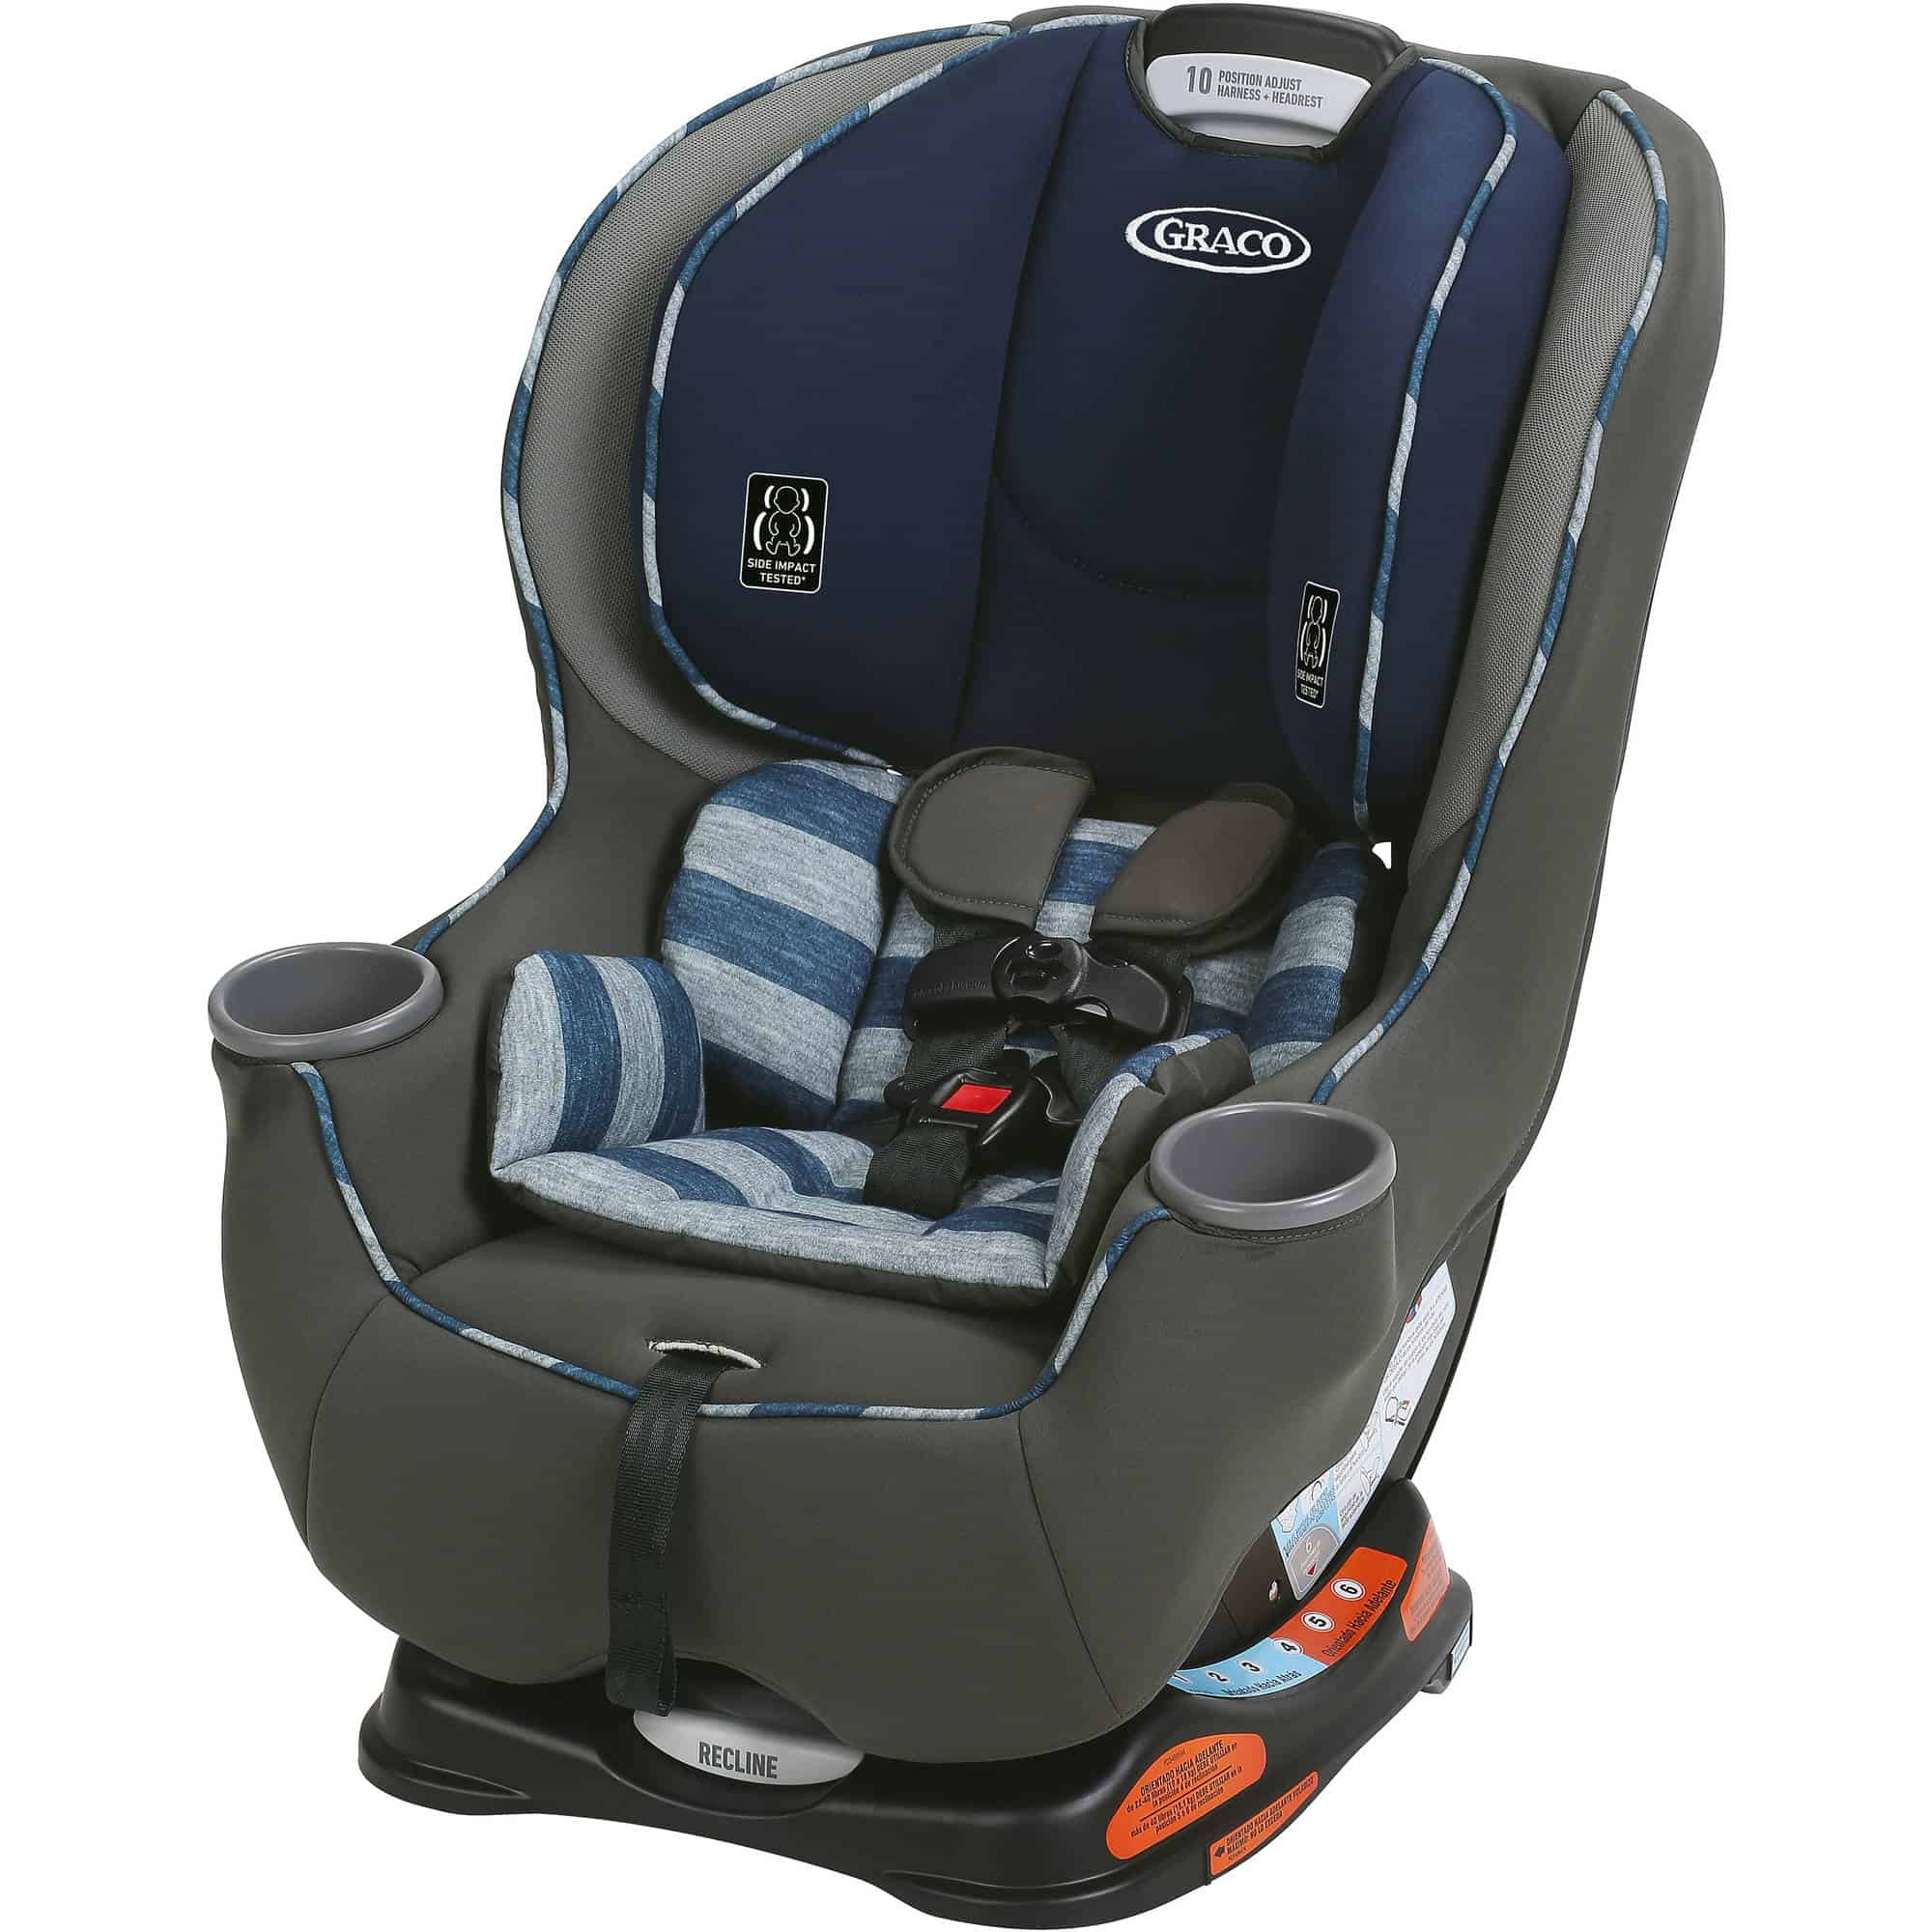 Convertible Car Seat Review: Graco Sequel 65